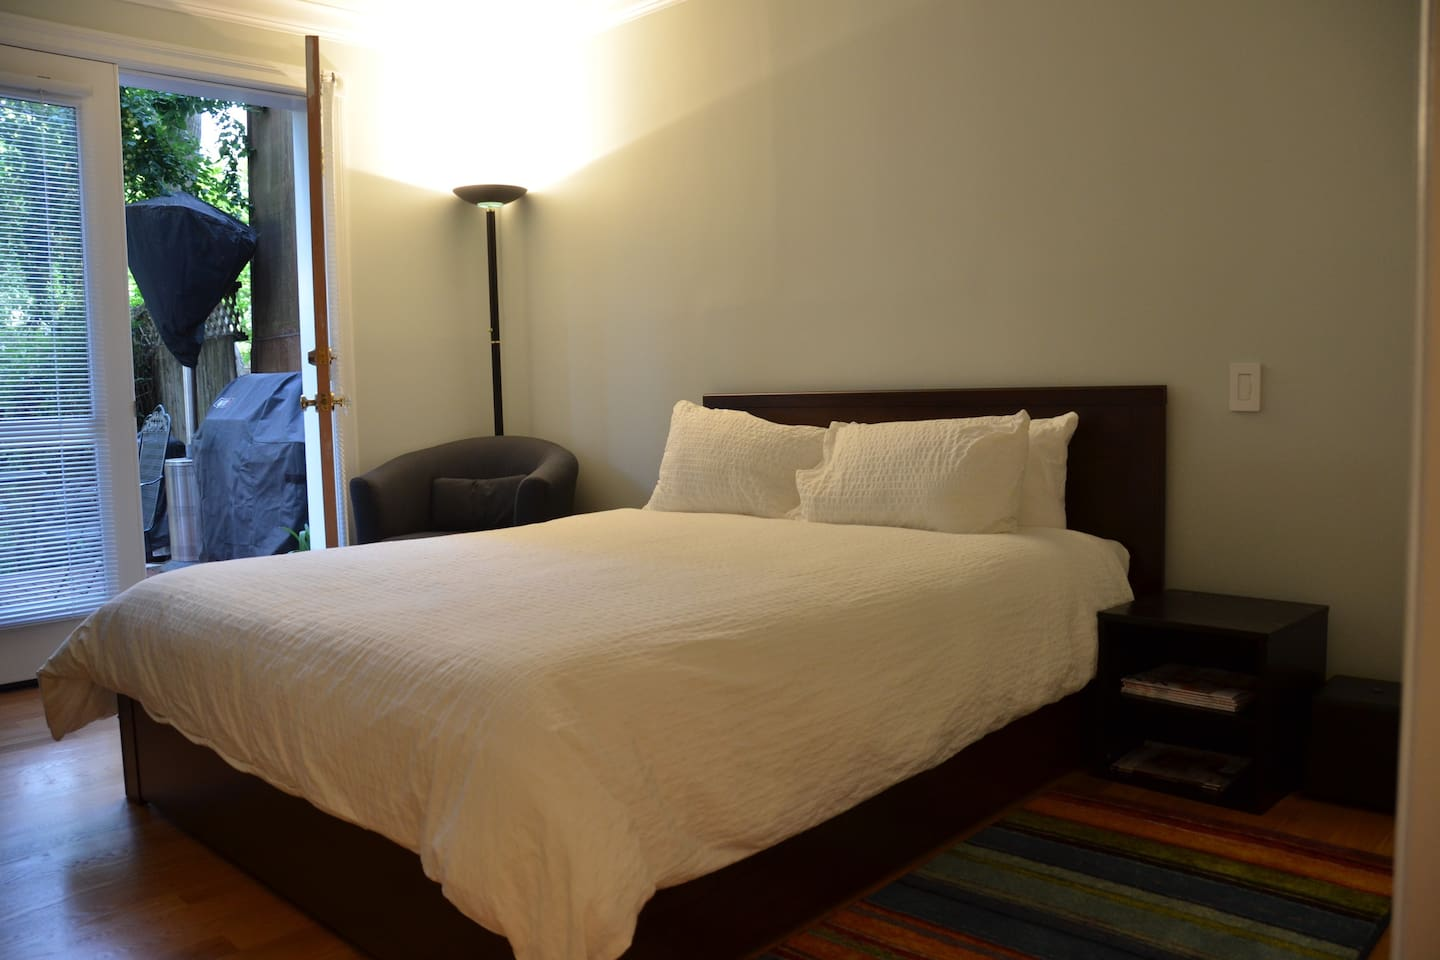 Brand new queen bed, linens, area rugs.  Complete remodel.